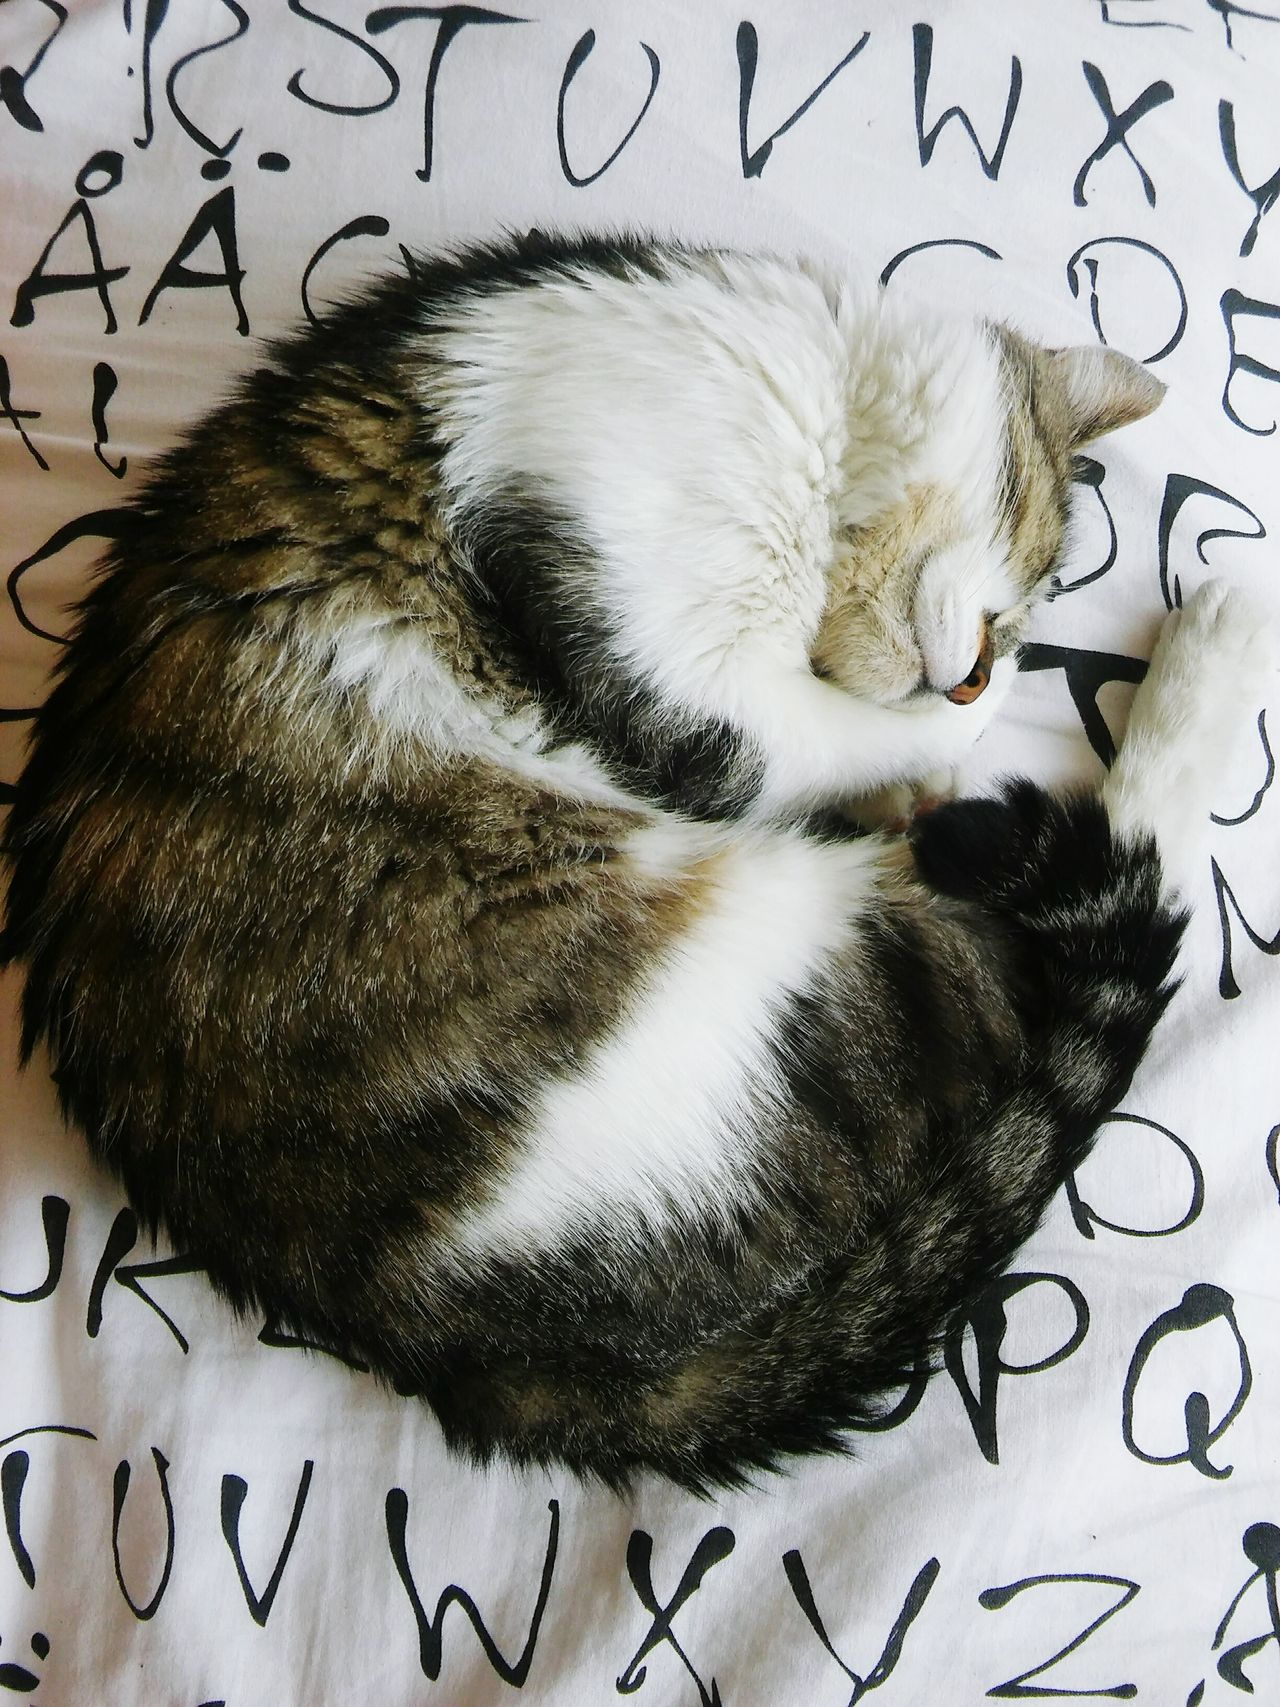 Boshko is the name of my model :) Cat Catslife Sleeping Cat Curled Up Fatcat